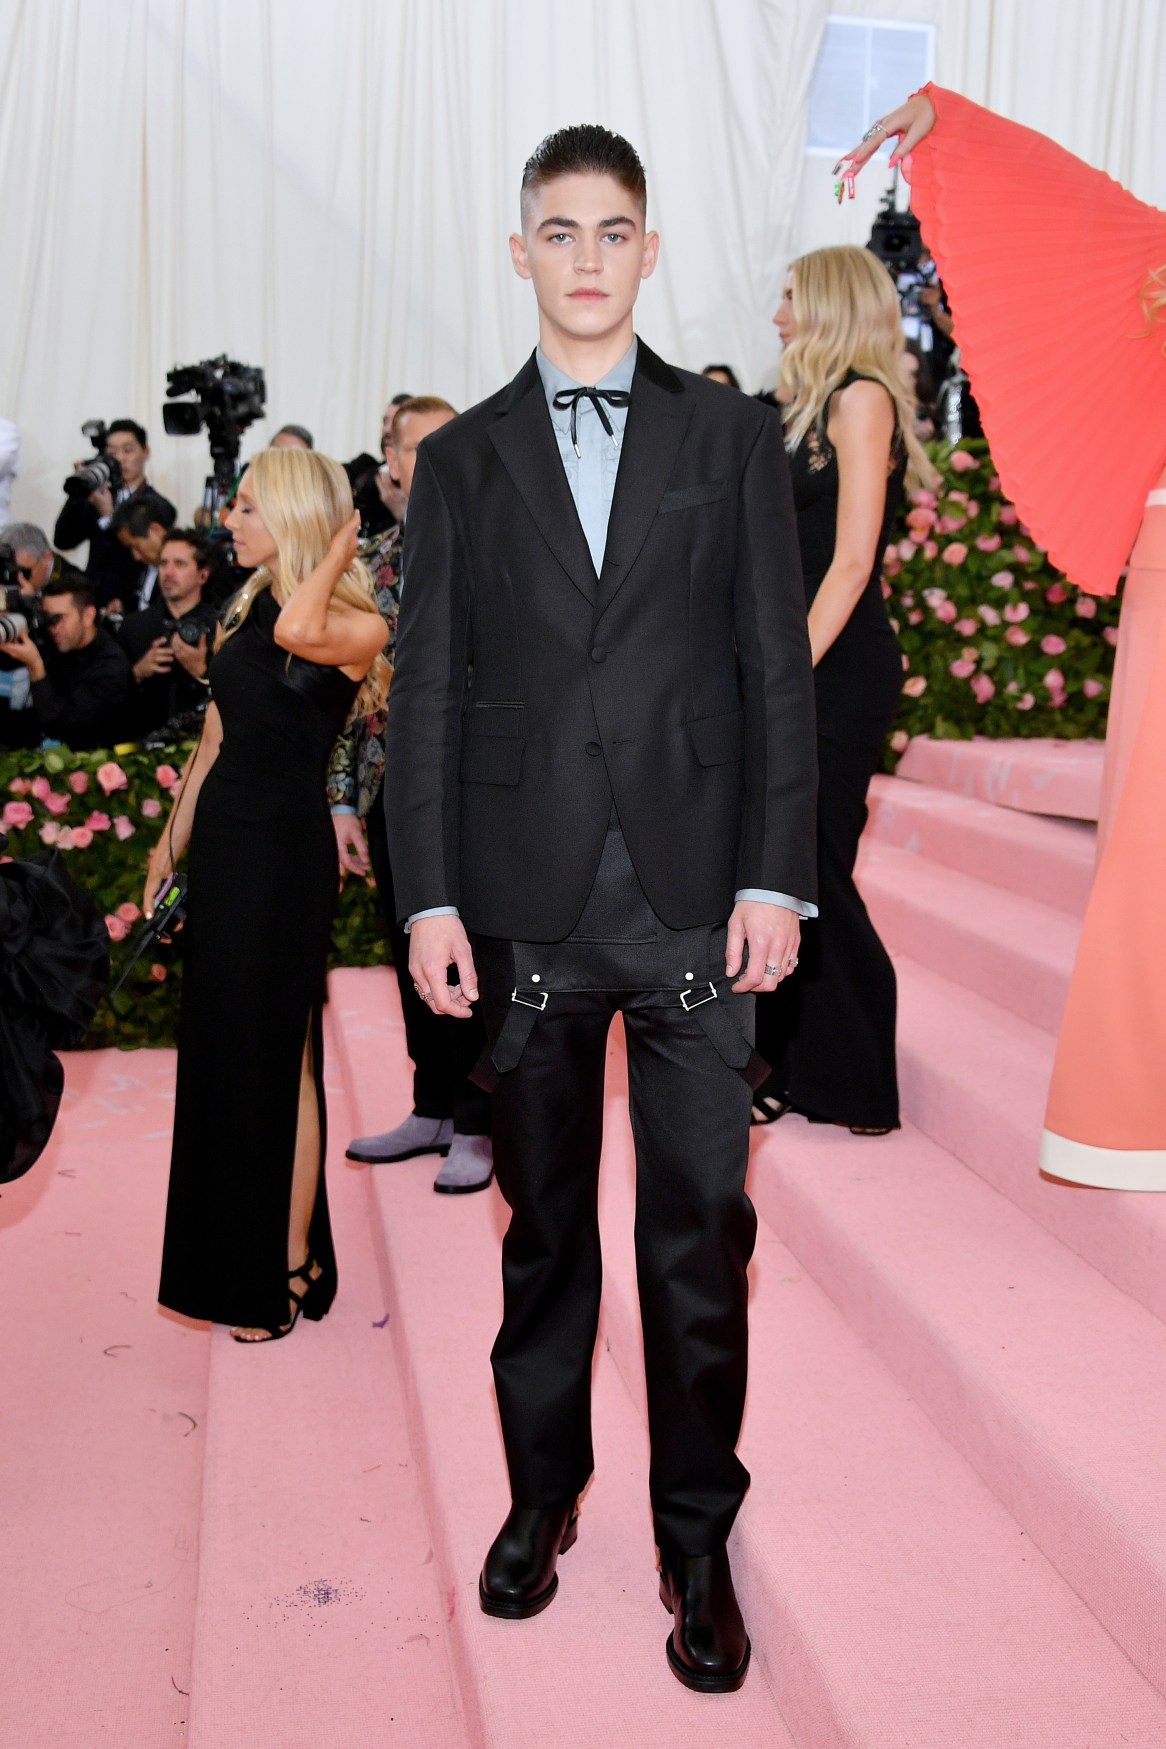 NEW YORK, NEW YORK - MAY 06: Hero Fiennes-Tiffin attends The 2019 Met Gala Celebrating Camp: Notes on Fashion at Metropolitan Museum of Art on May 06, 2019 in New York City. (Photo by Dia Dipasupil/FilmMagic)